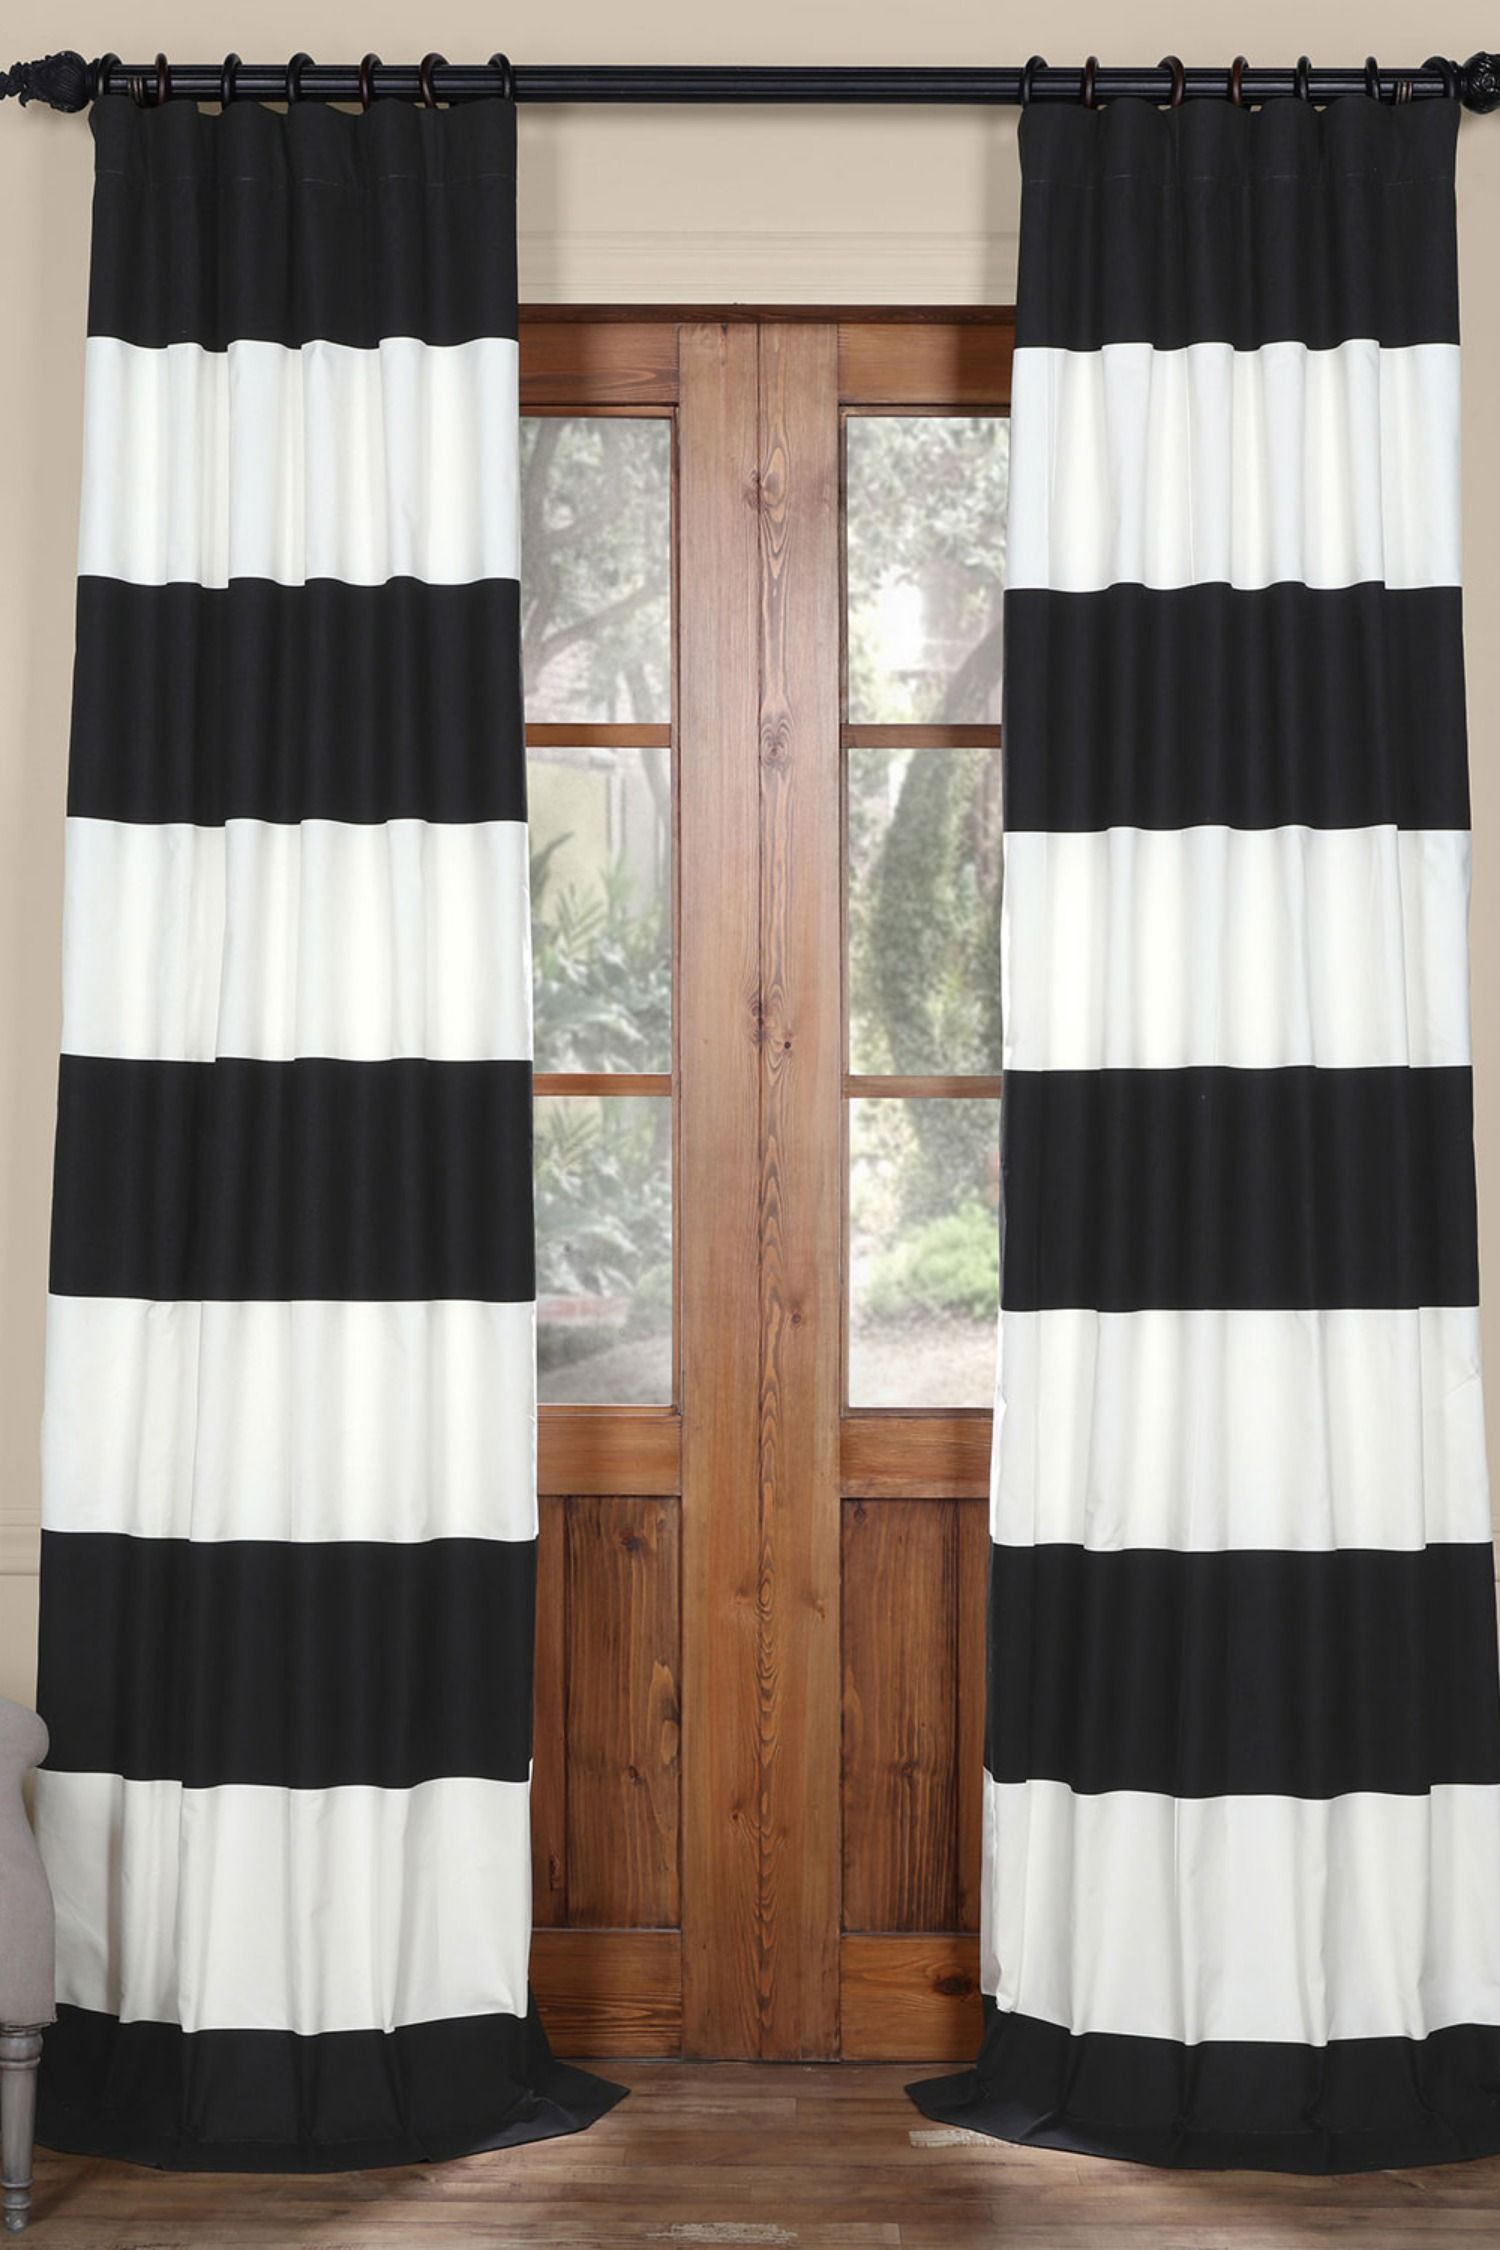 These Cotton Twill Black And White Drapes Provide A Classic Look